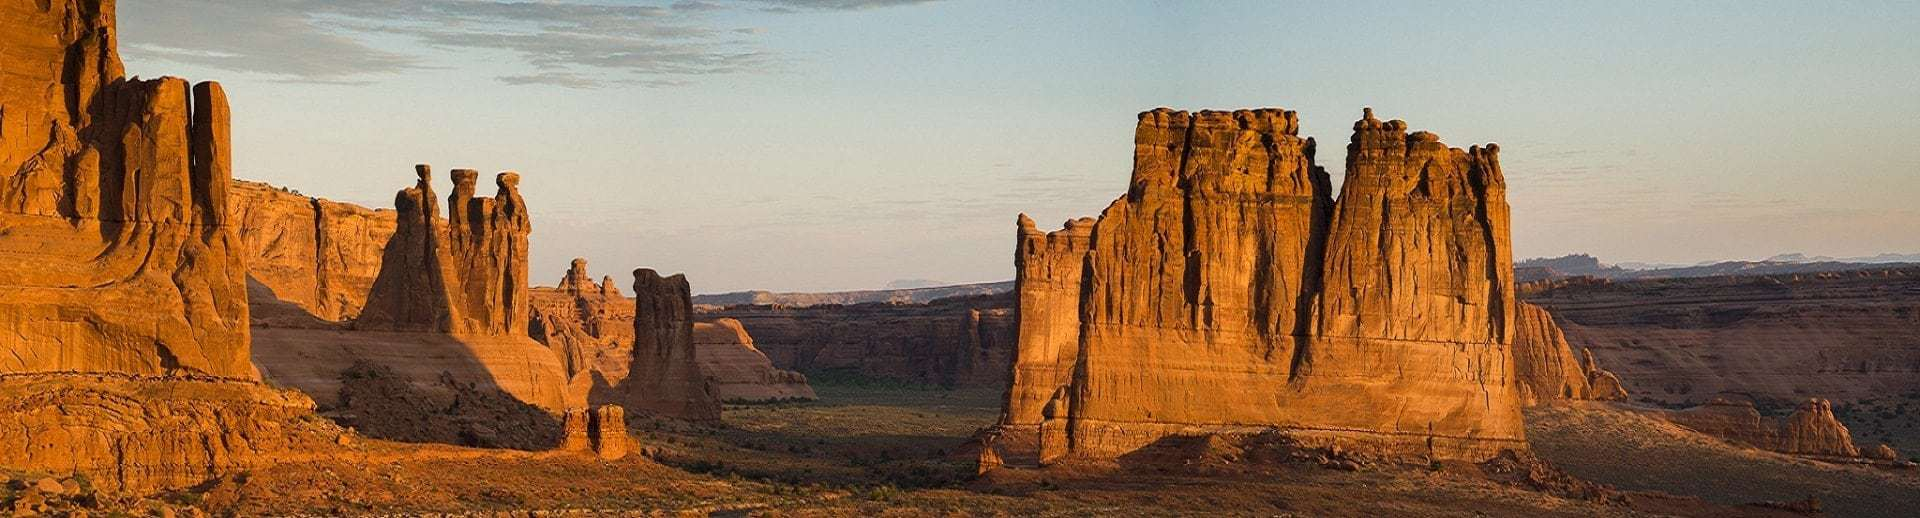 wd 40 monument valley1